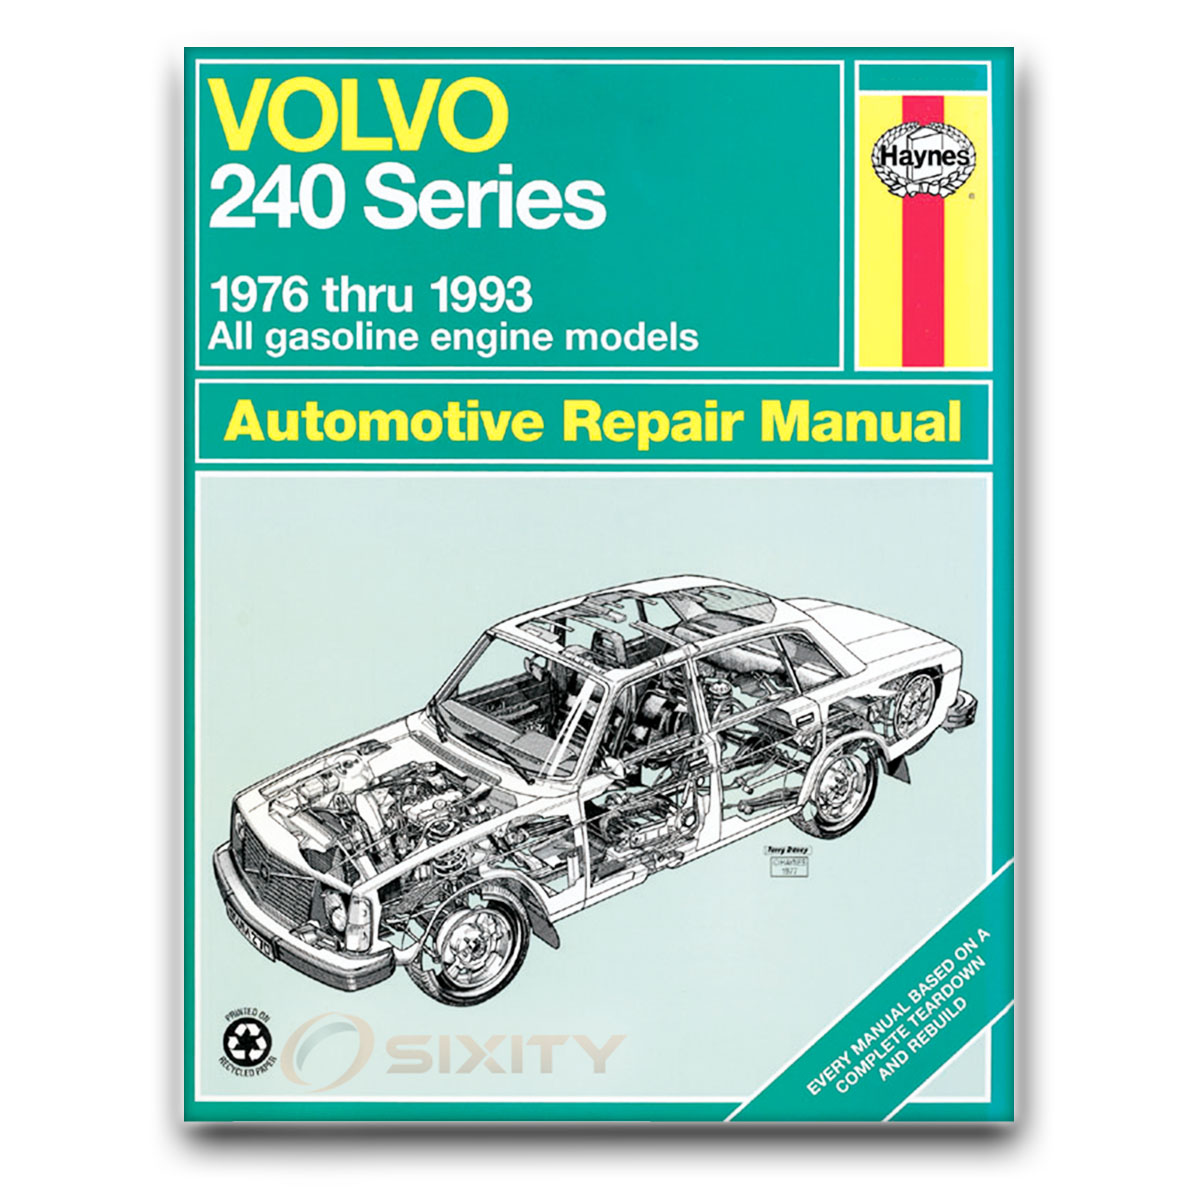 Haynes Repair Manual for Volvo 240 Base DL SE Shop Service Garage Book jr